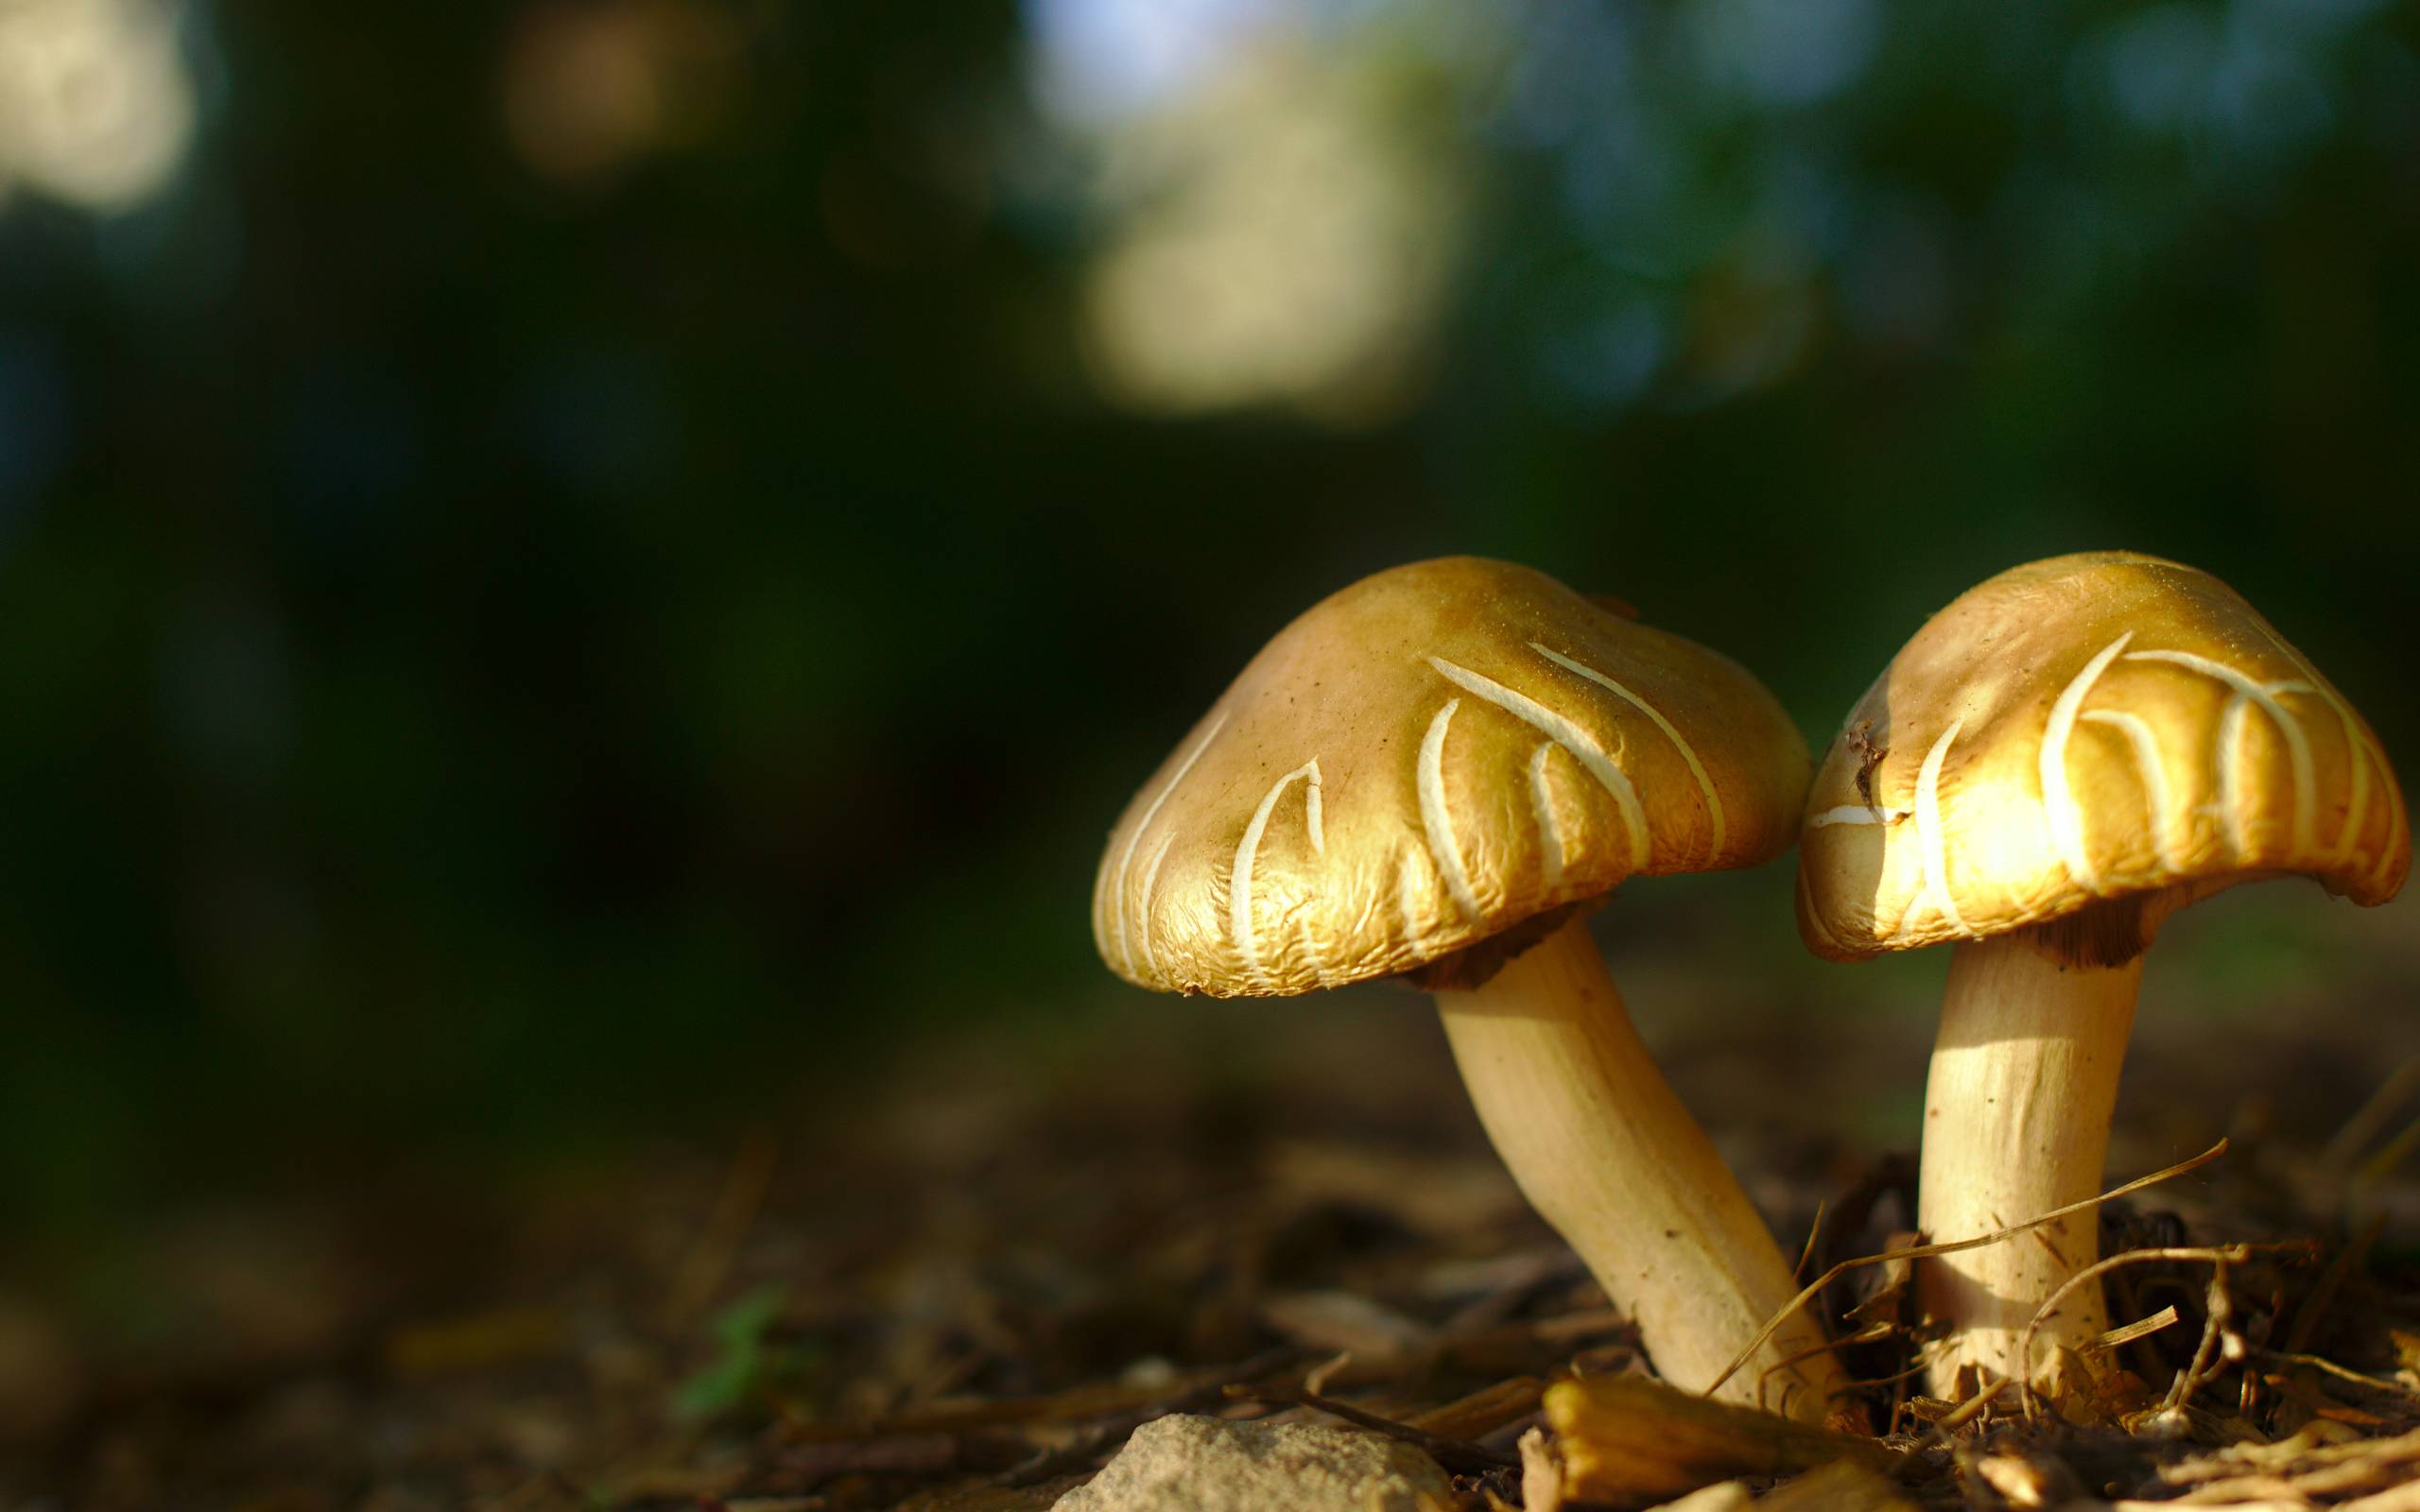 Backyard_Mushrooms_by_Kurt_Zitzelman.jpg